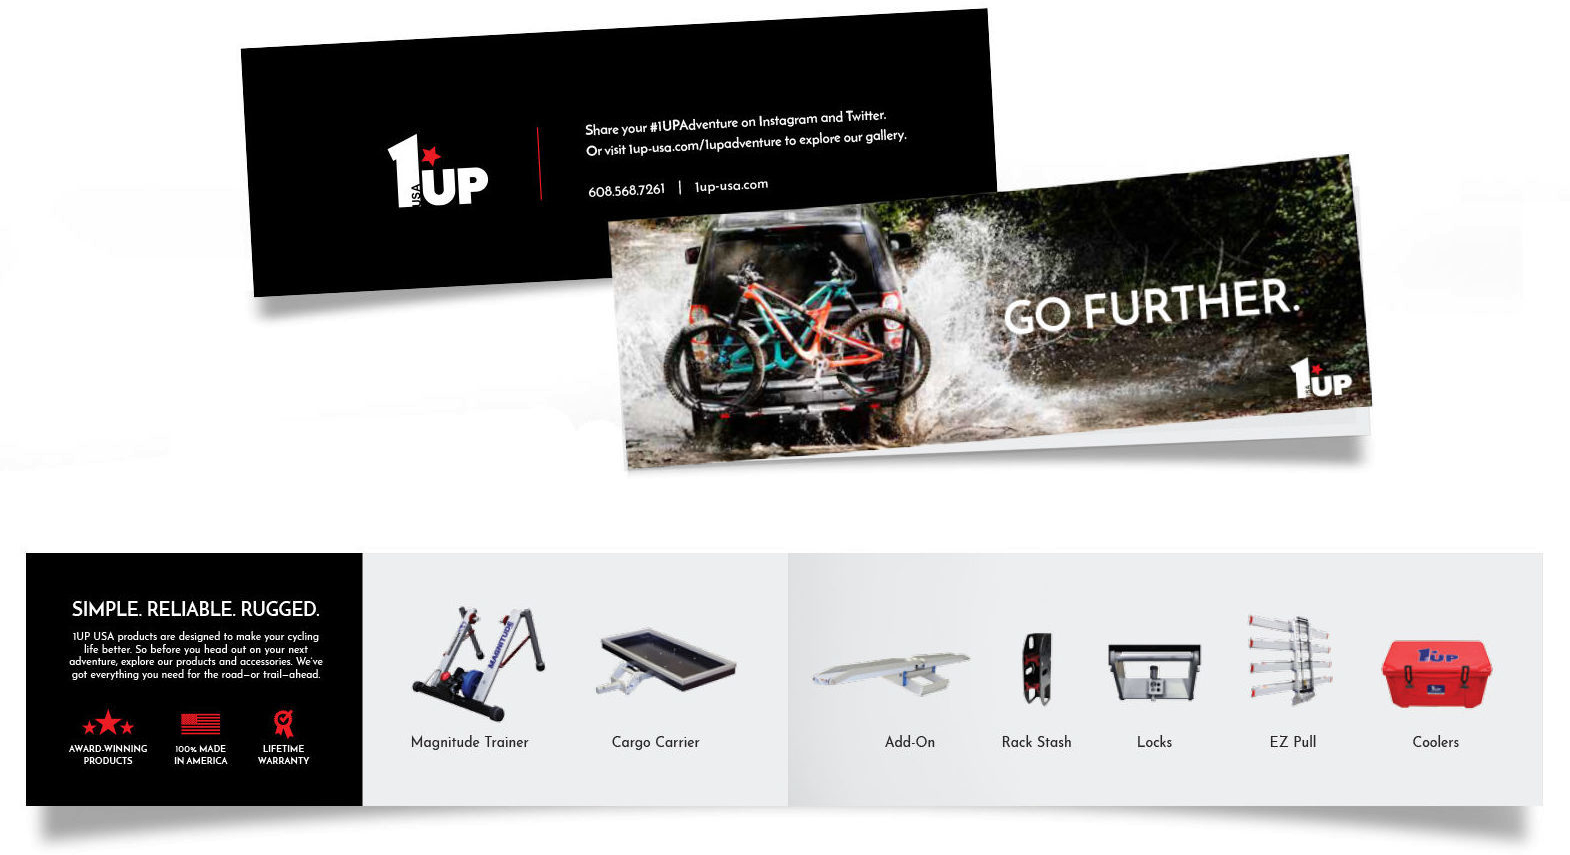 1UP USA Product Catalog Leave Behind Interior and Exterior